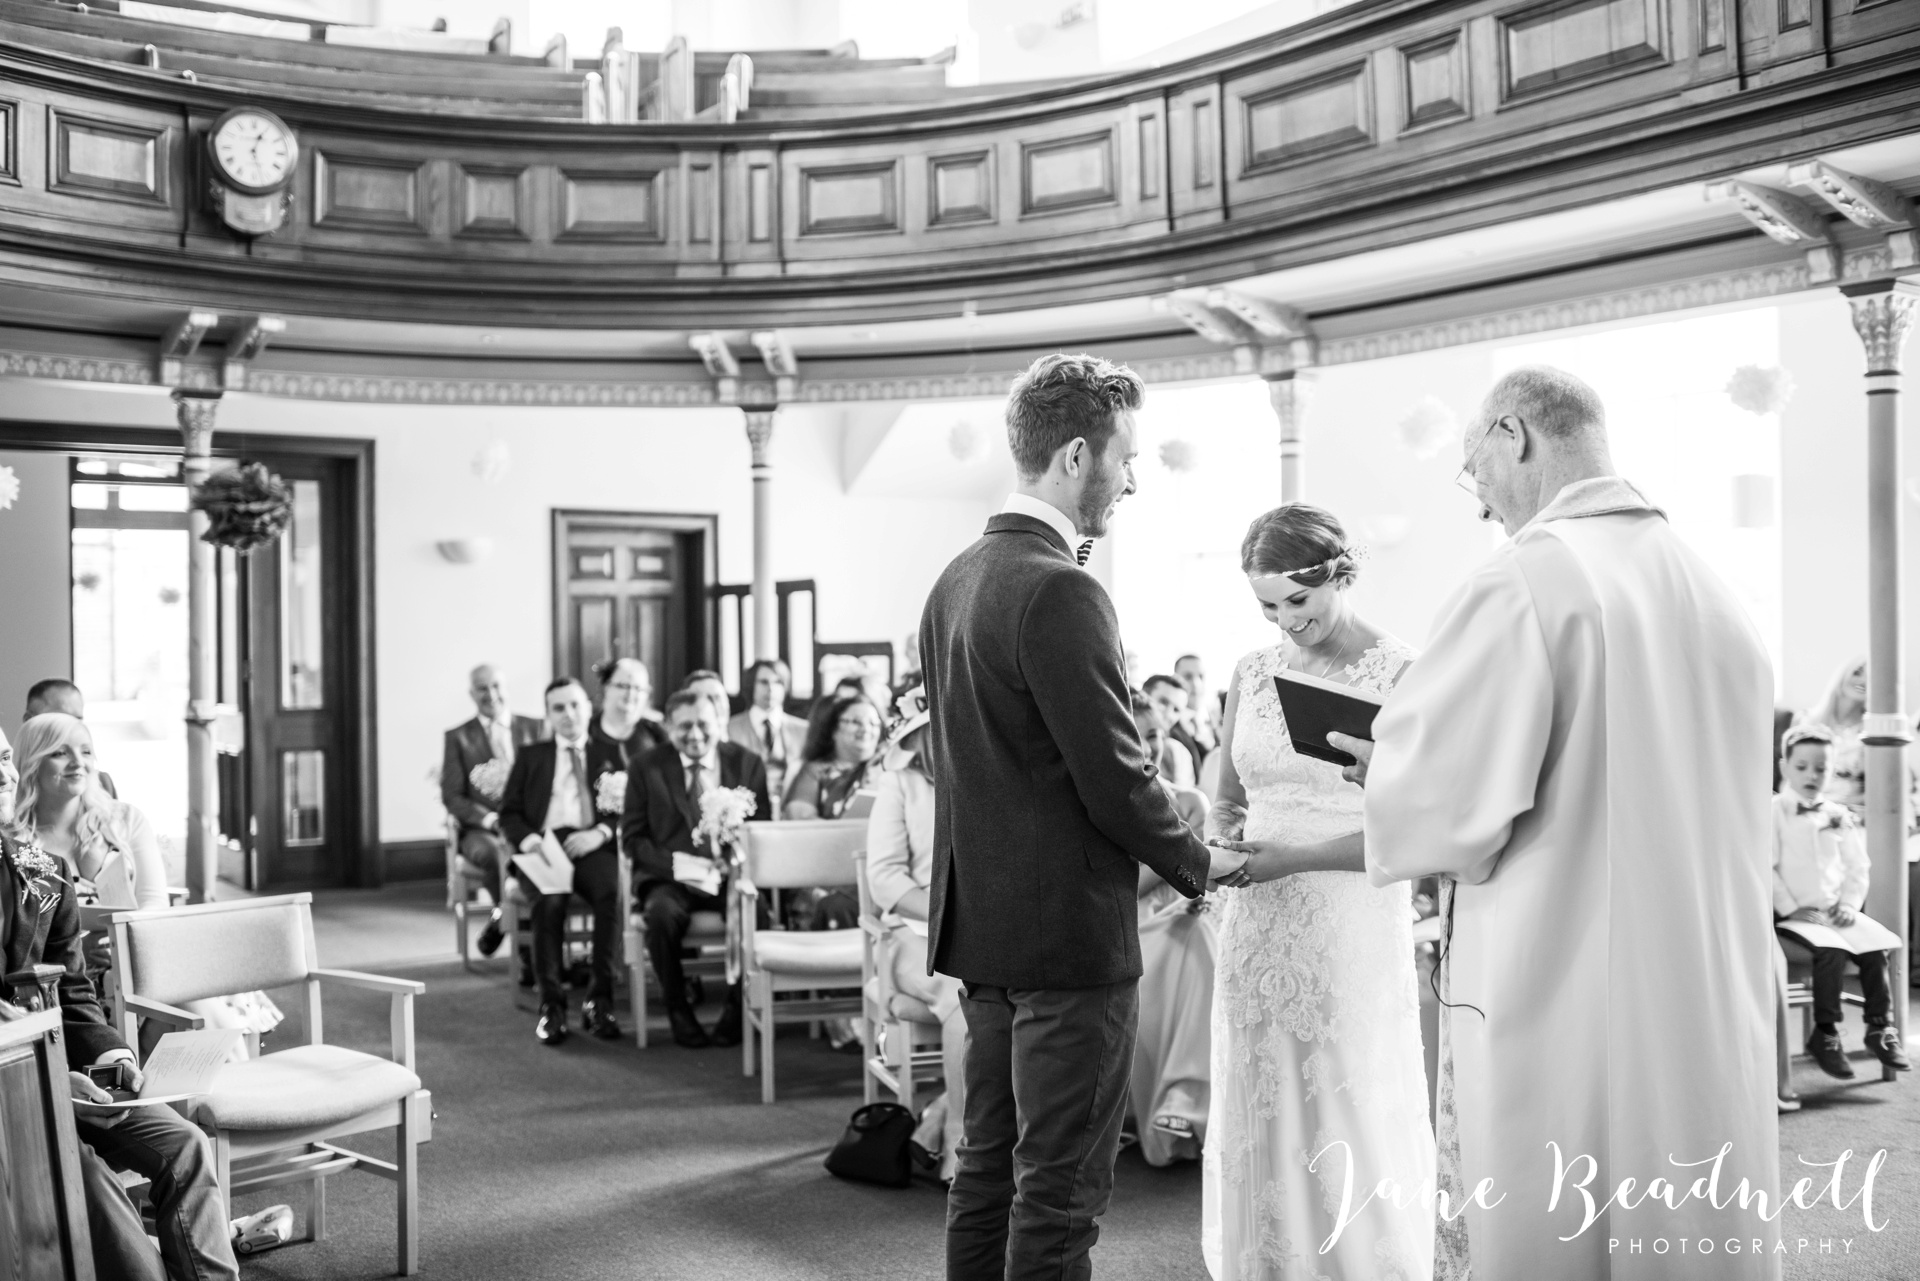 Jane Beadnell fine art wedding photographer The Old Deanery Ripon_0035